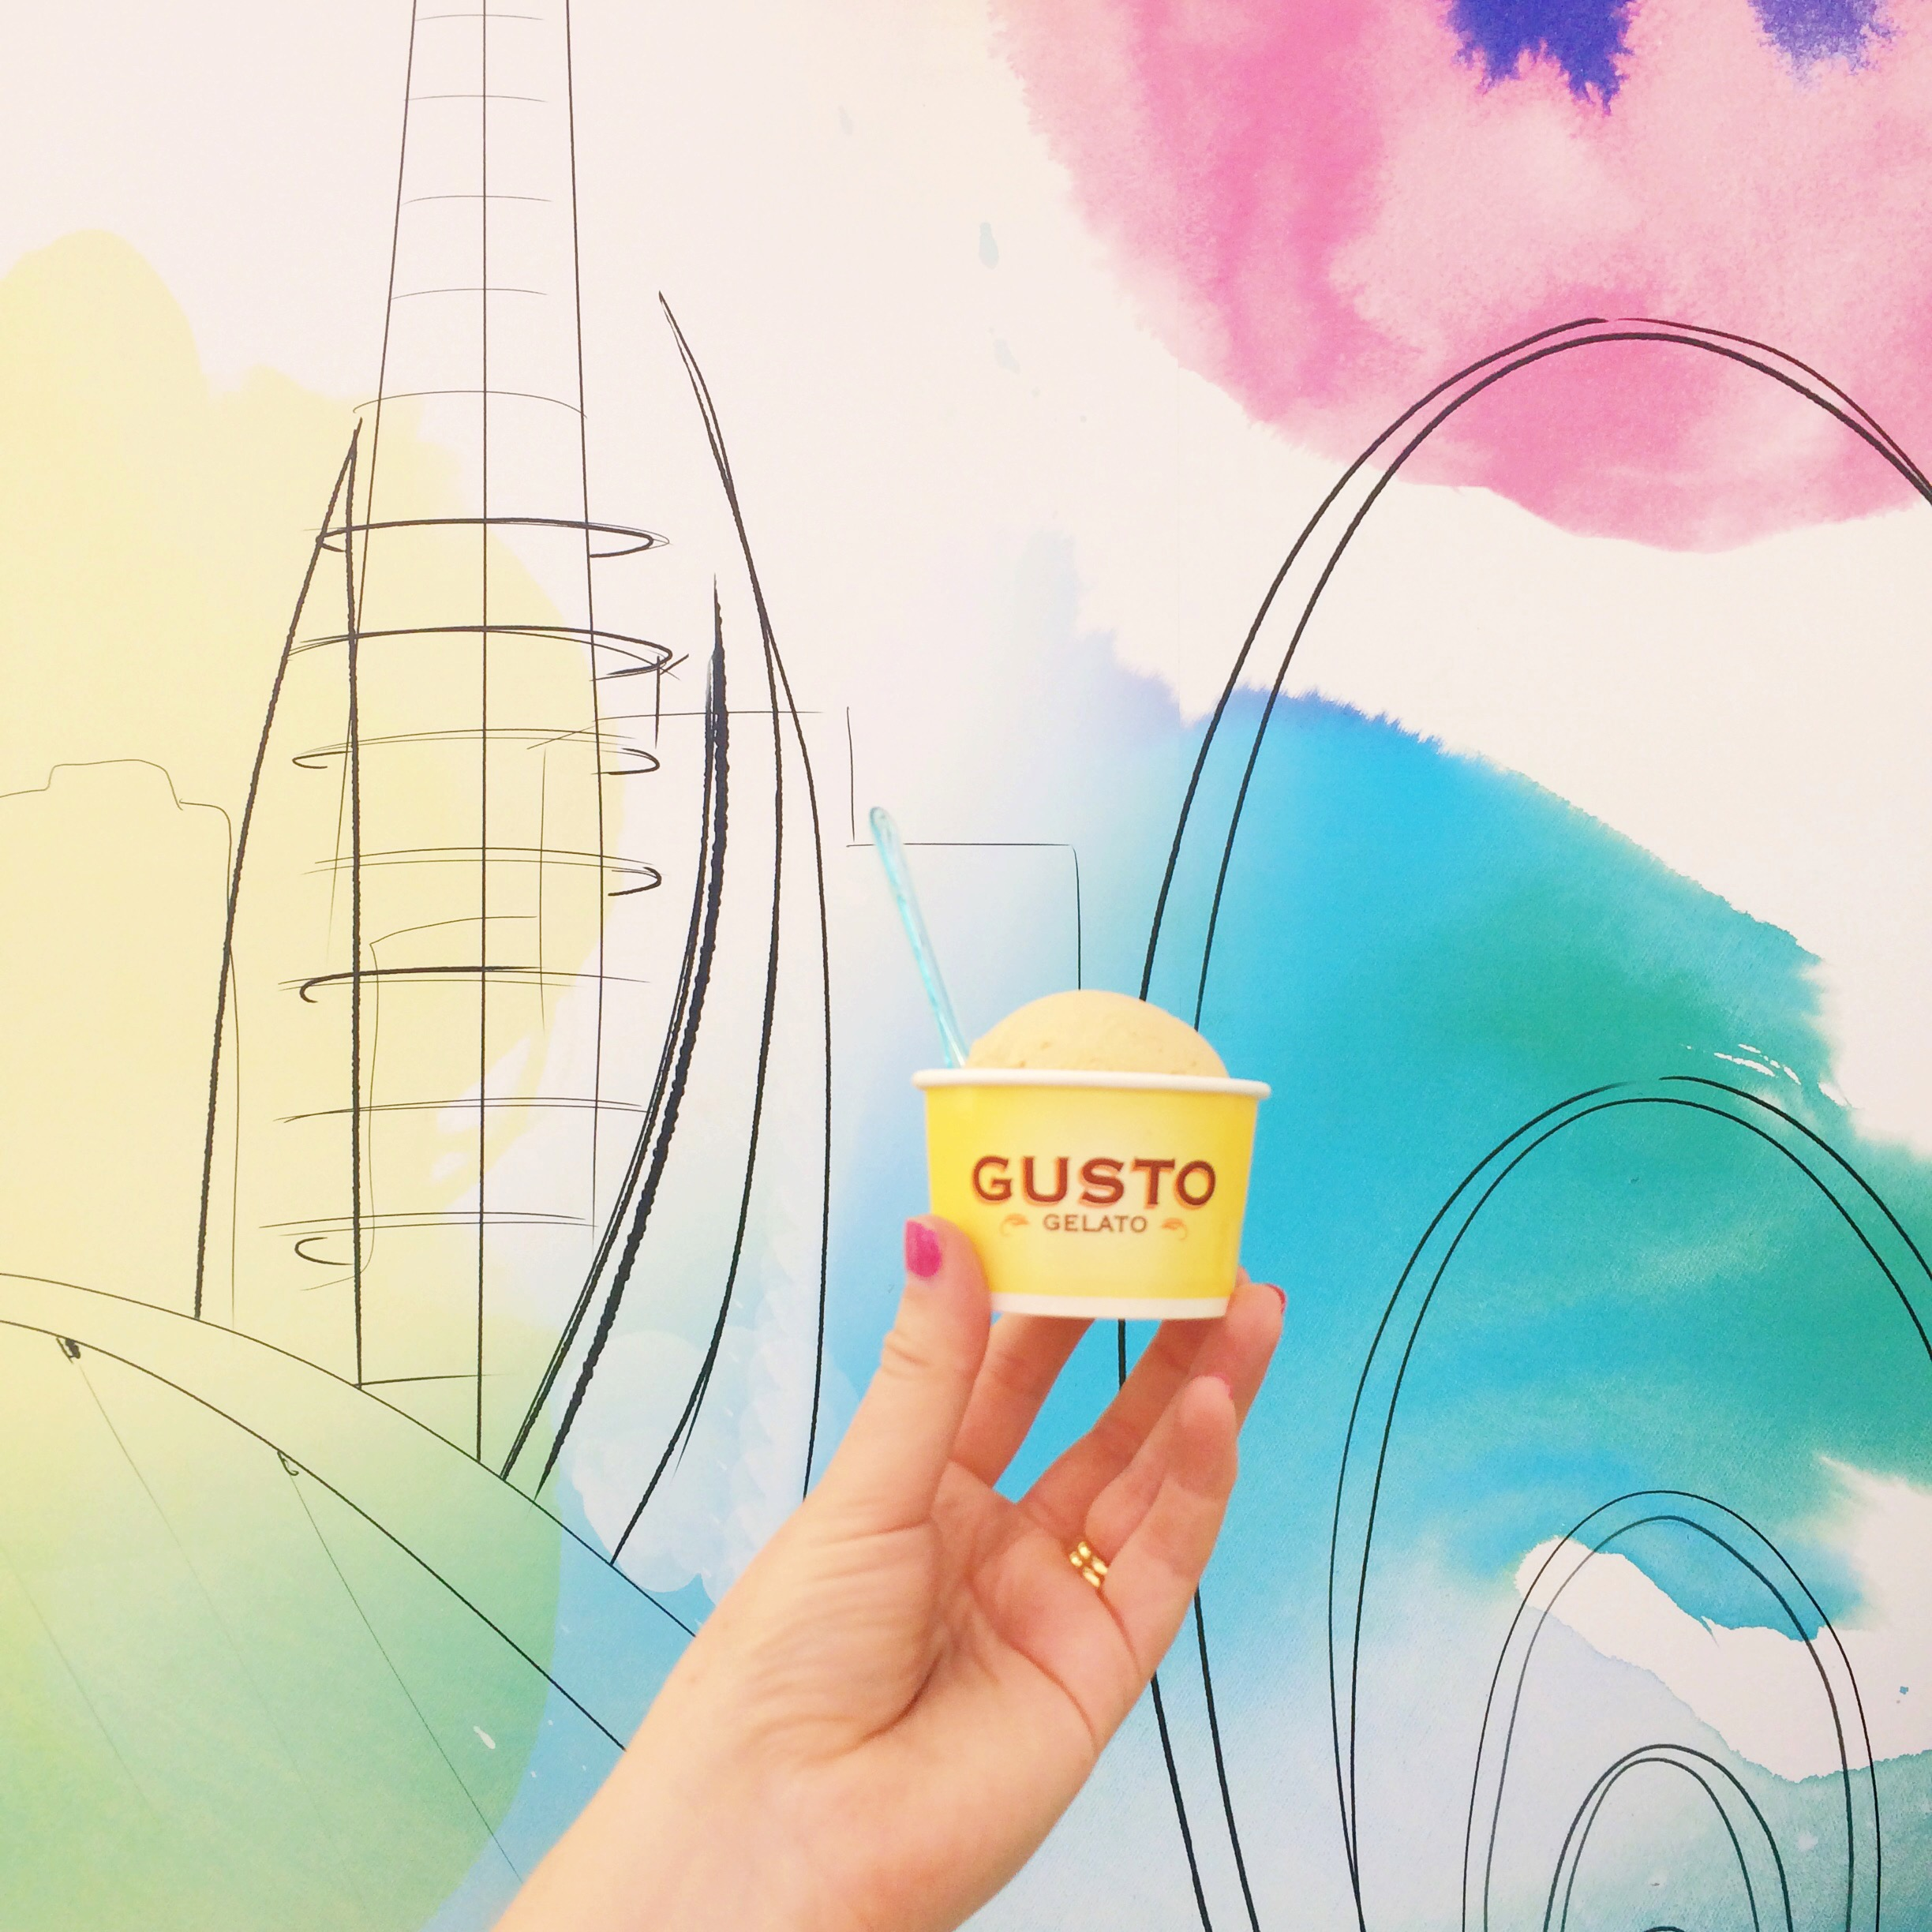 Gusto gelato ice cream held up in front of colourful store artwork